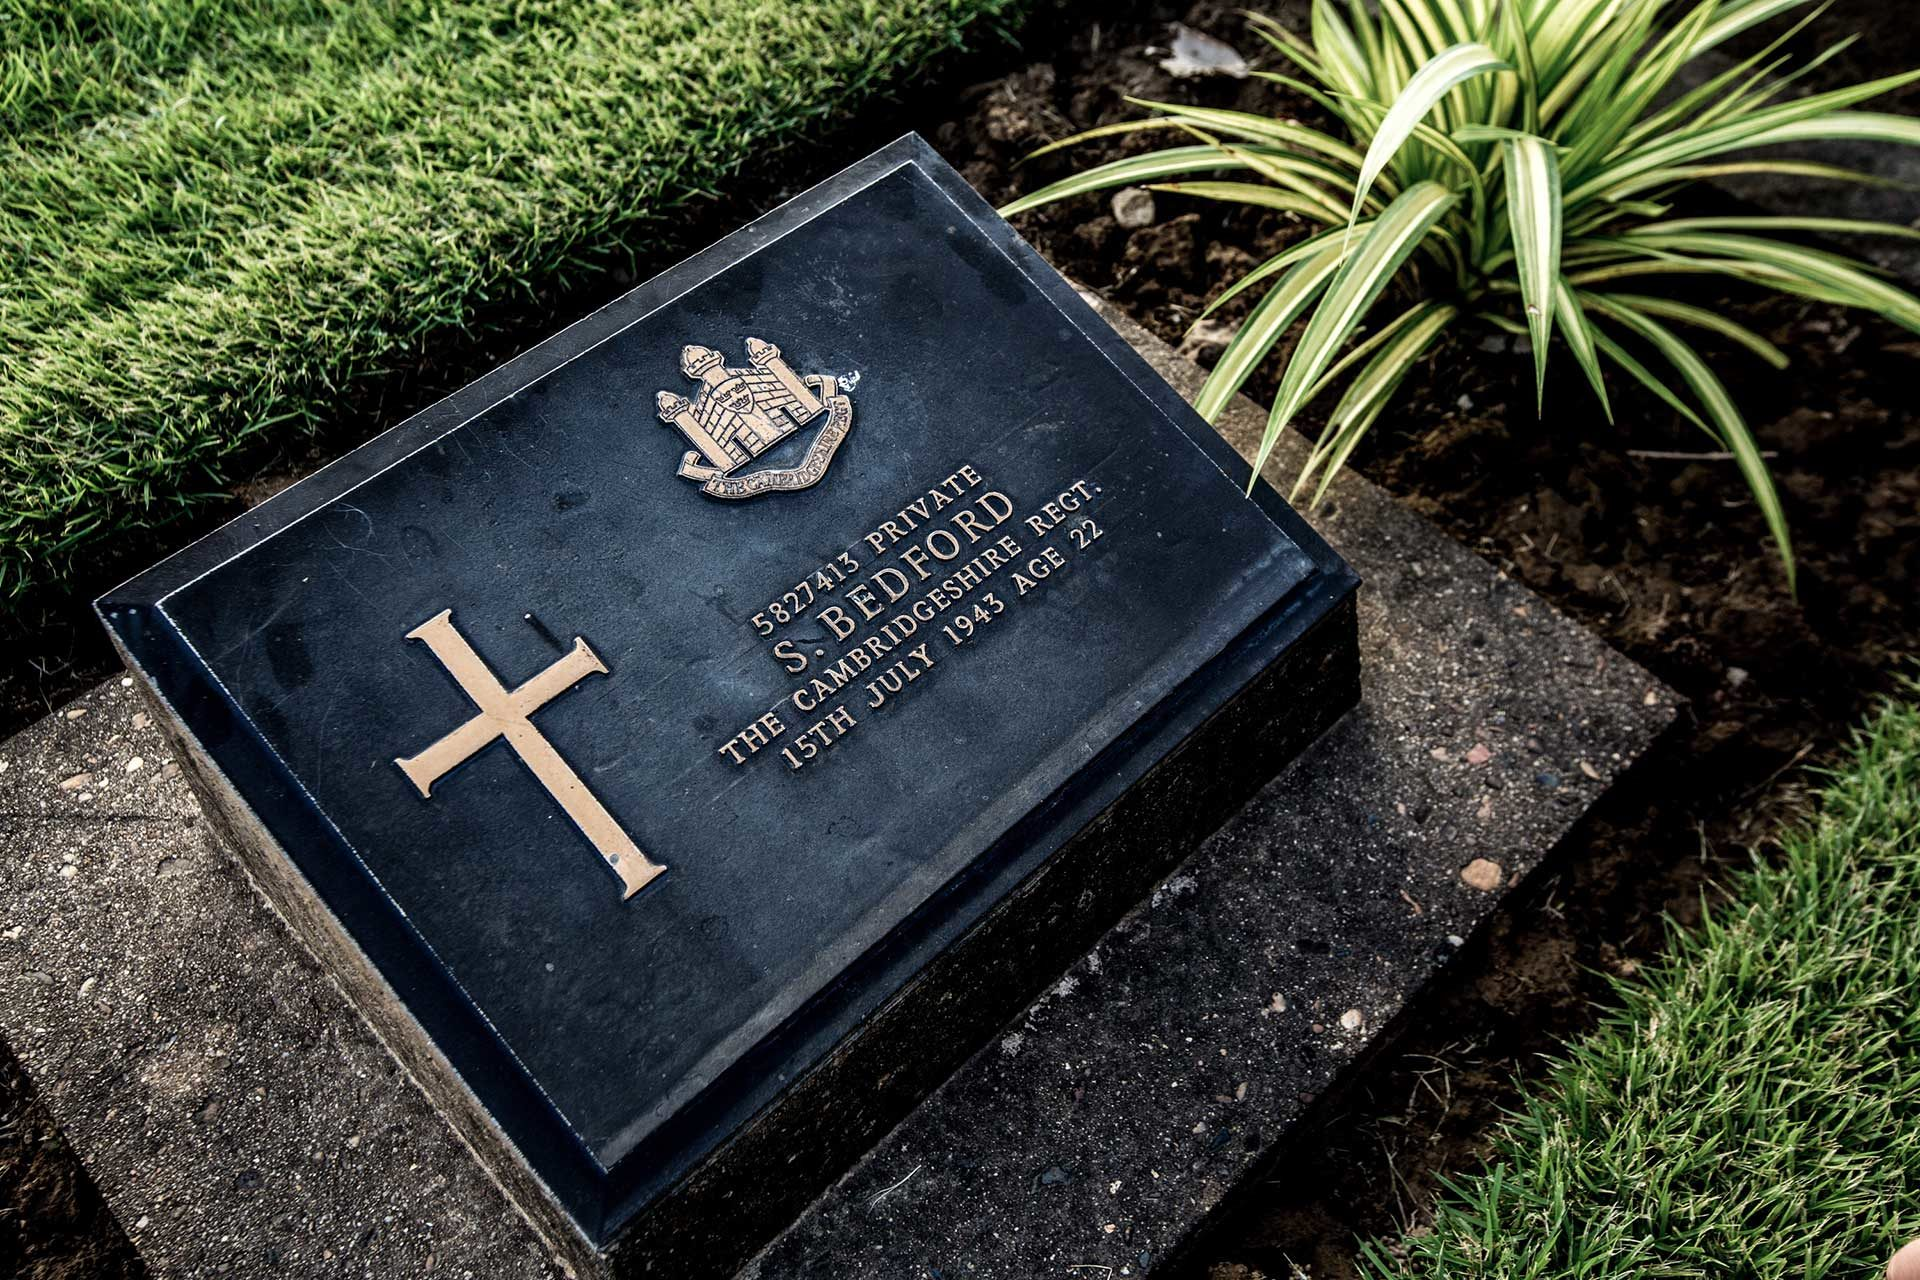 Reflections on Seeing My Grave in a Thai War Cemetery